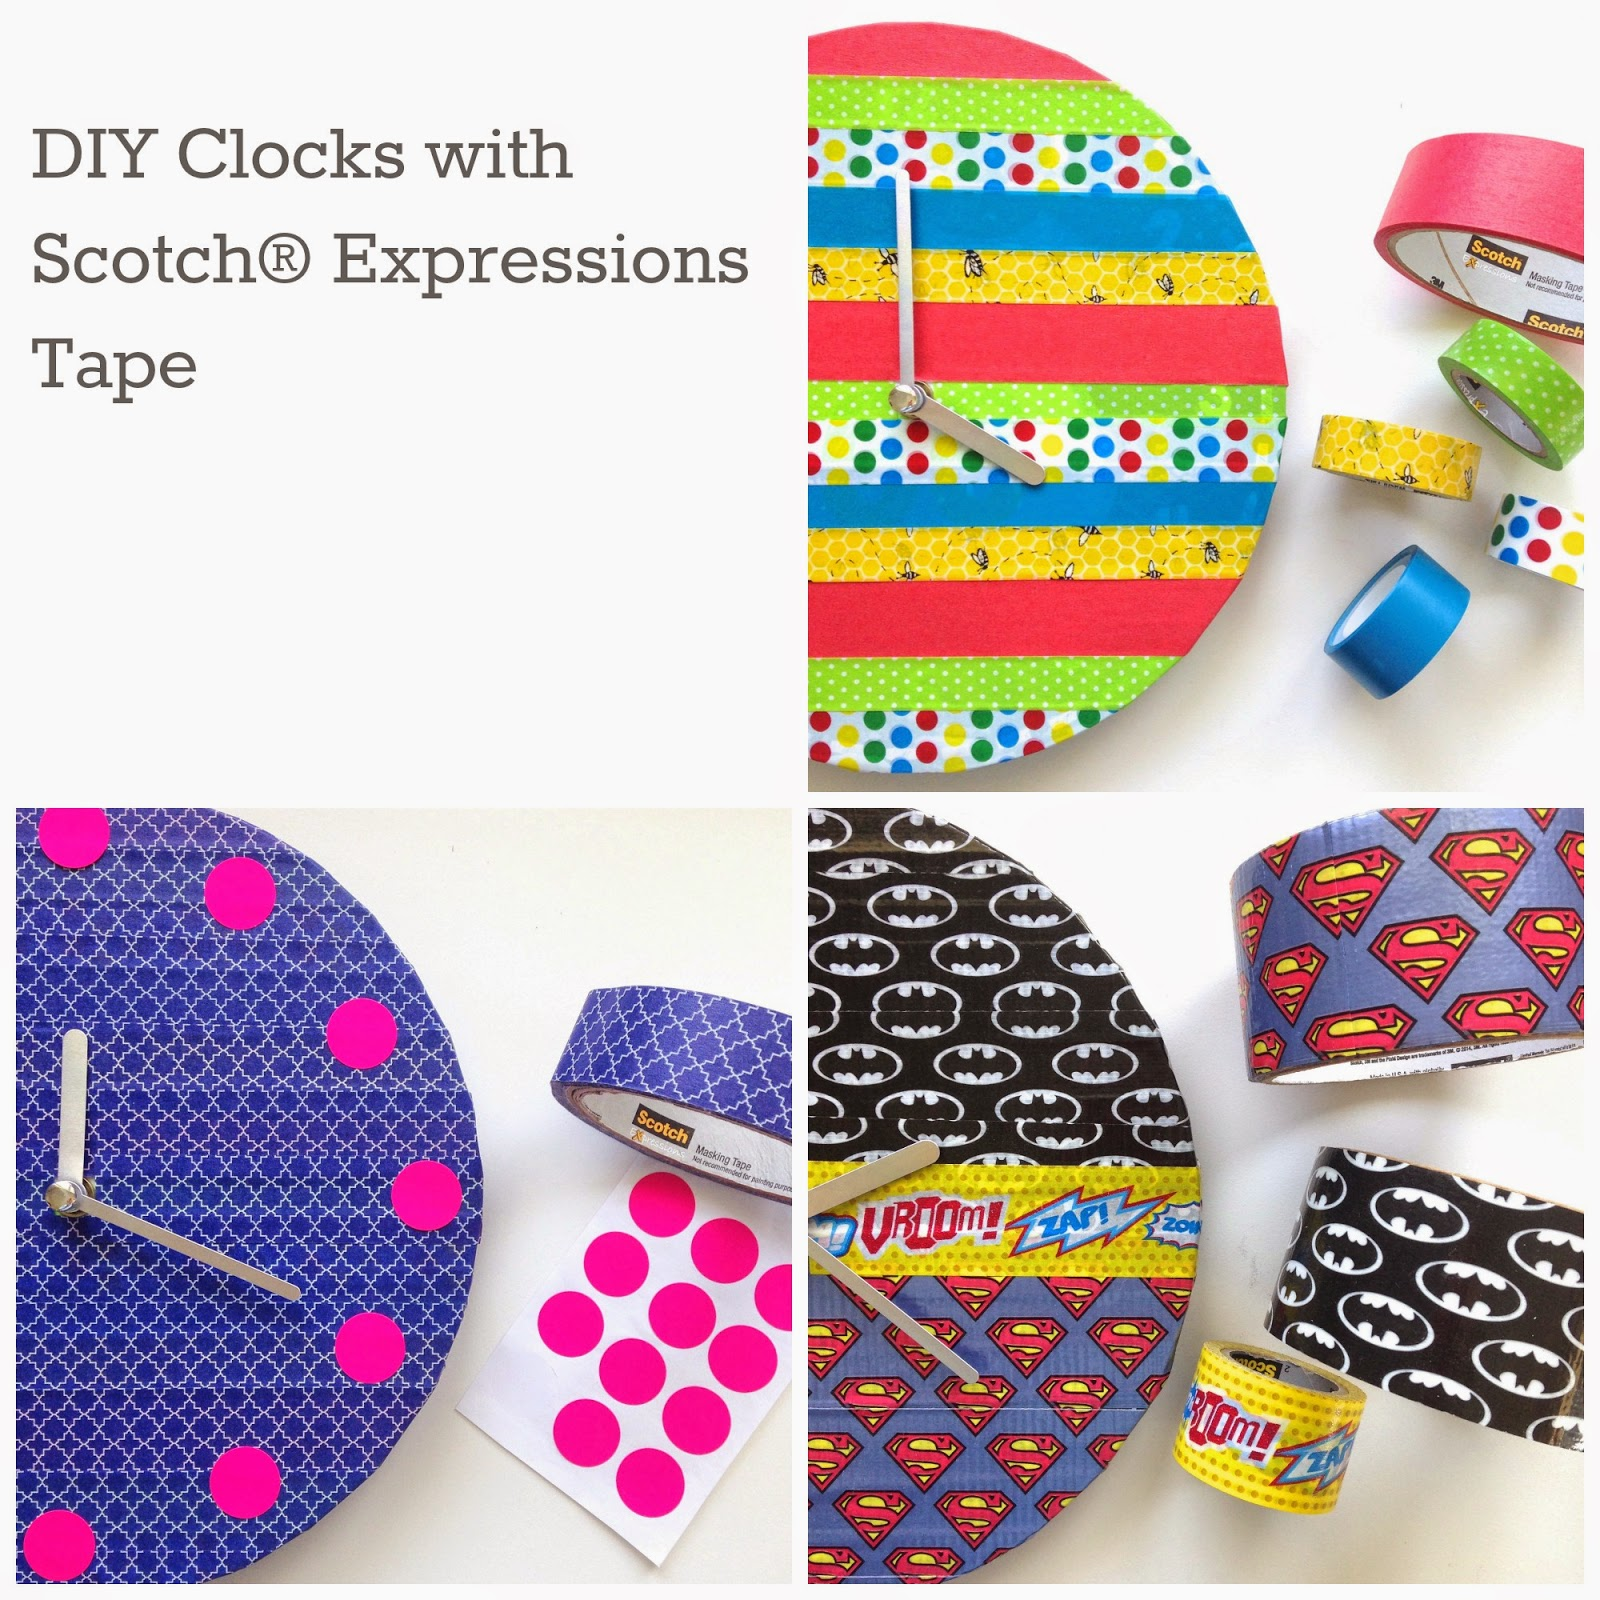 mousehouse diy pin board with scotch® expressions tape